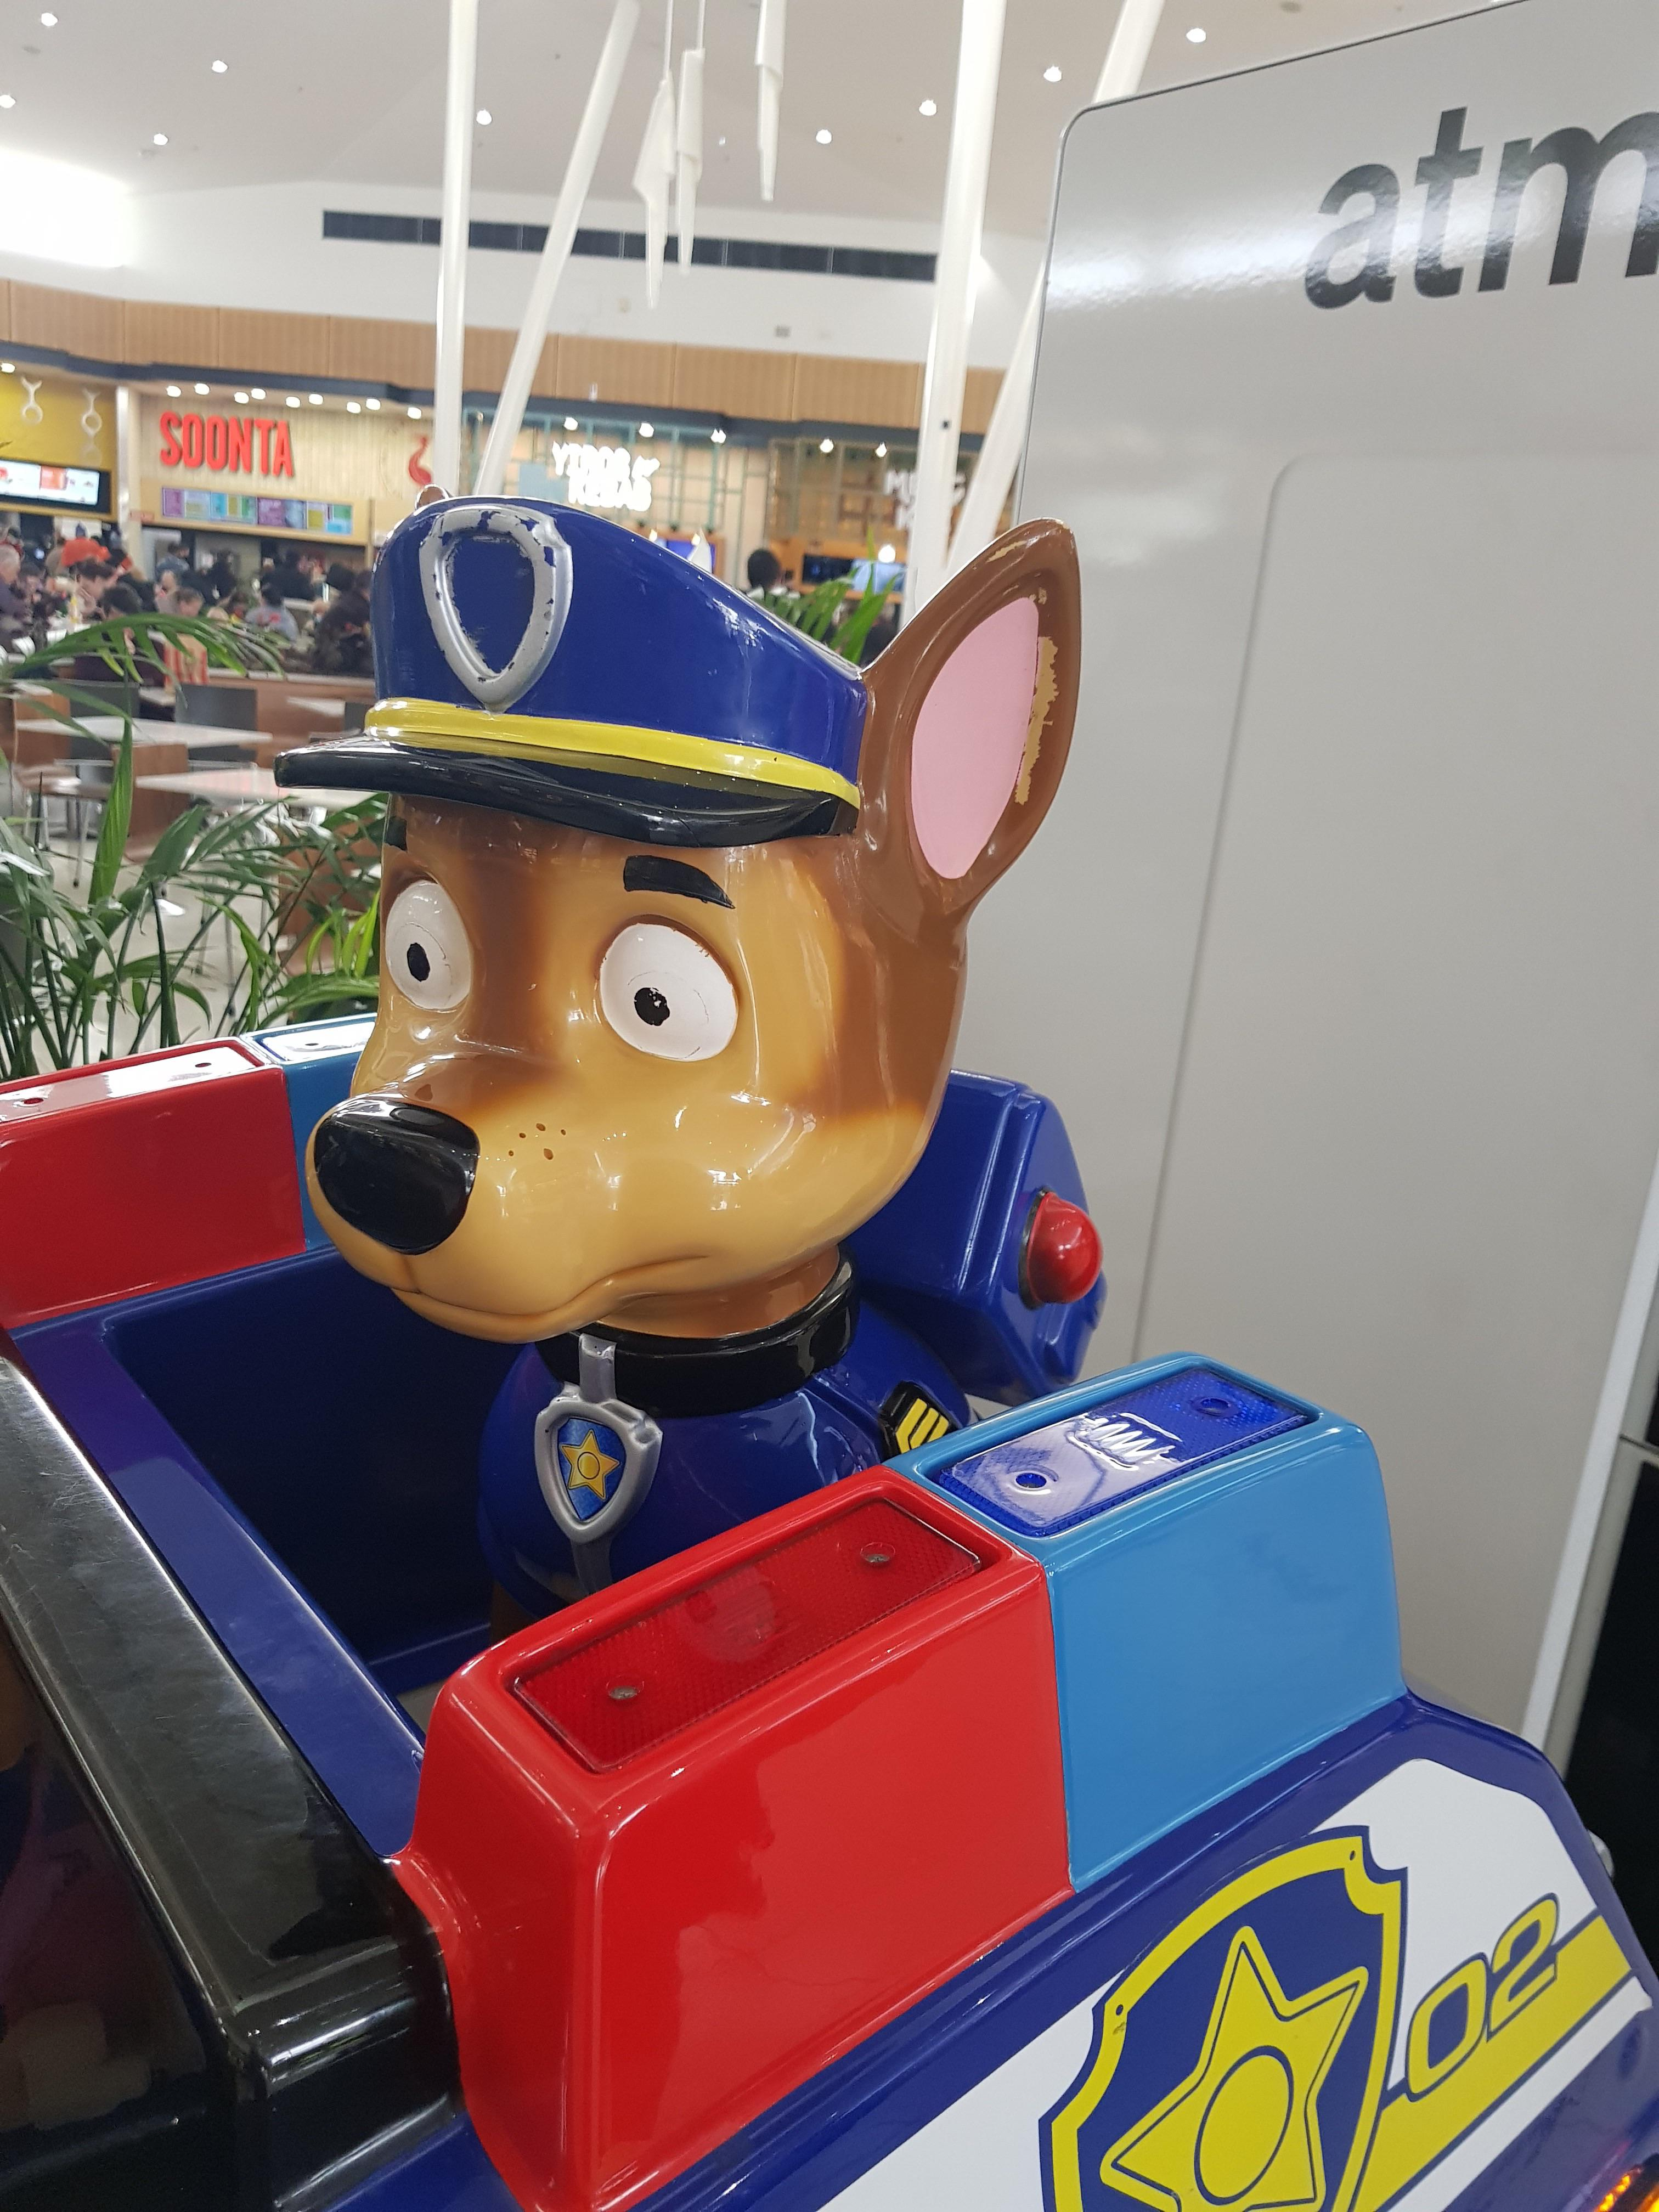 Saw this at the mall yesterday, Chase has seen better days